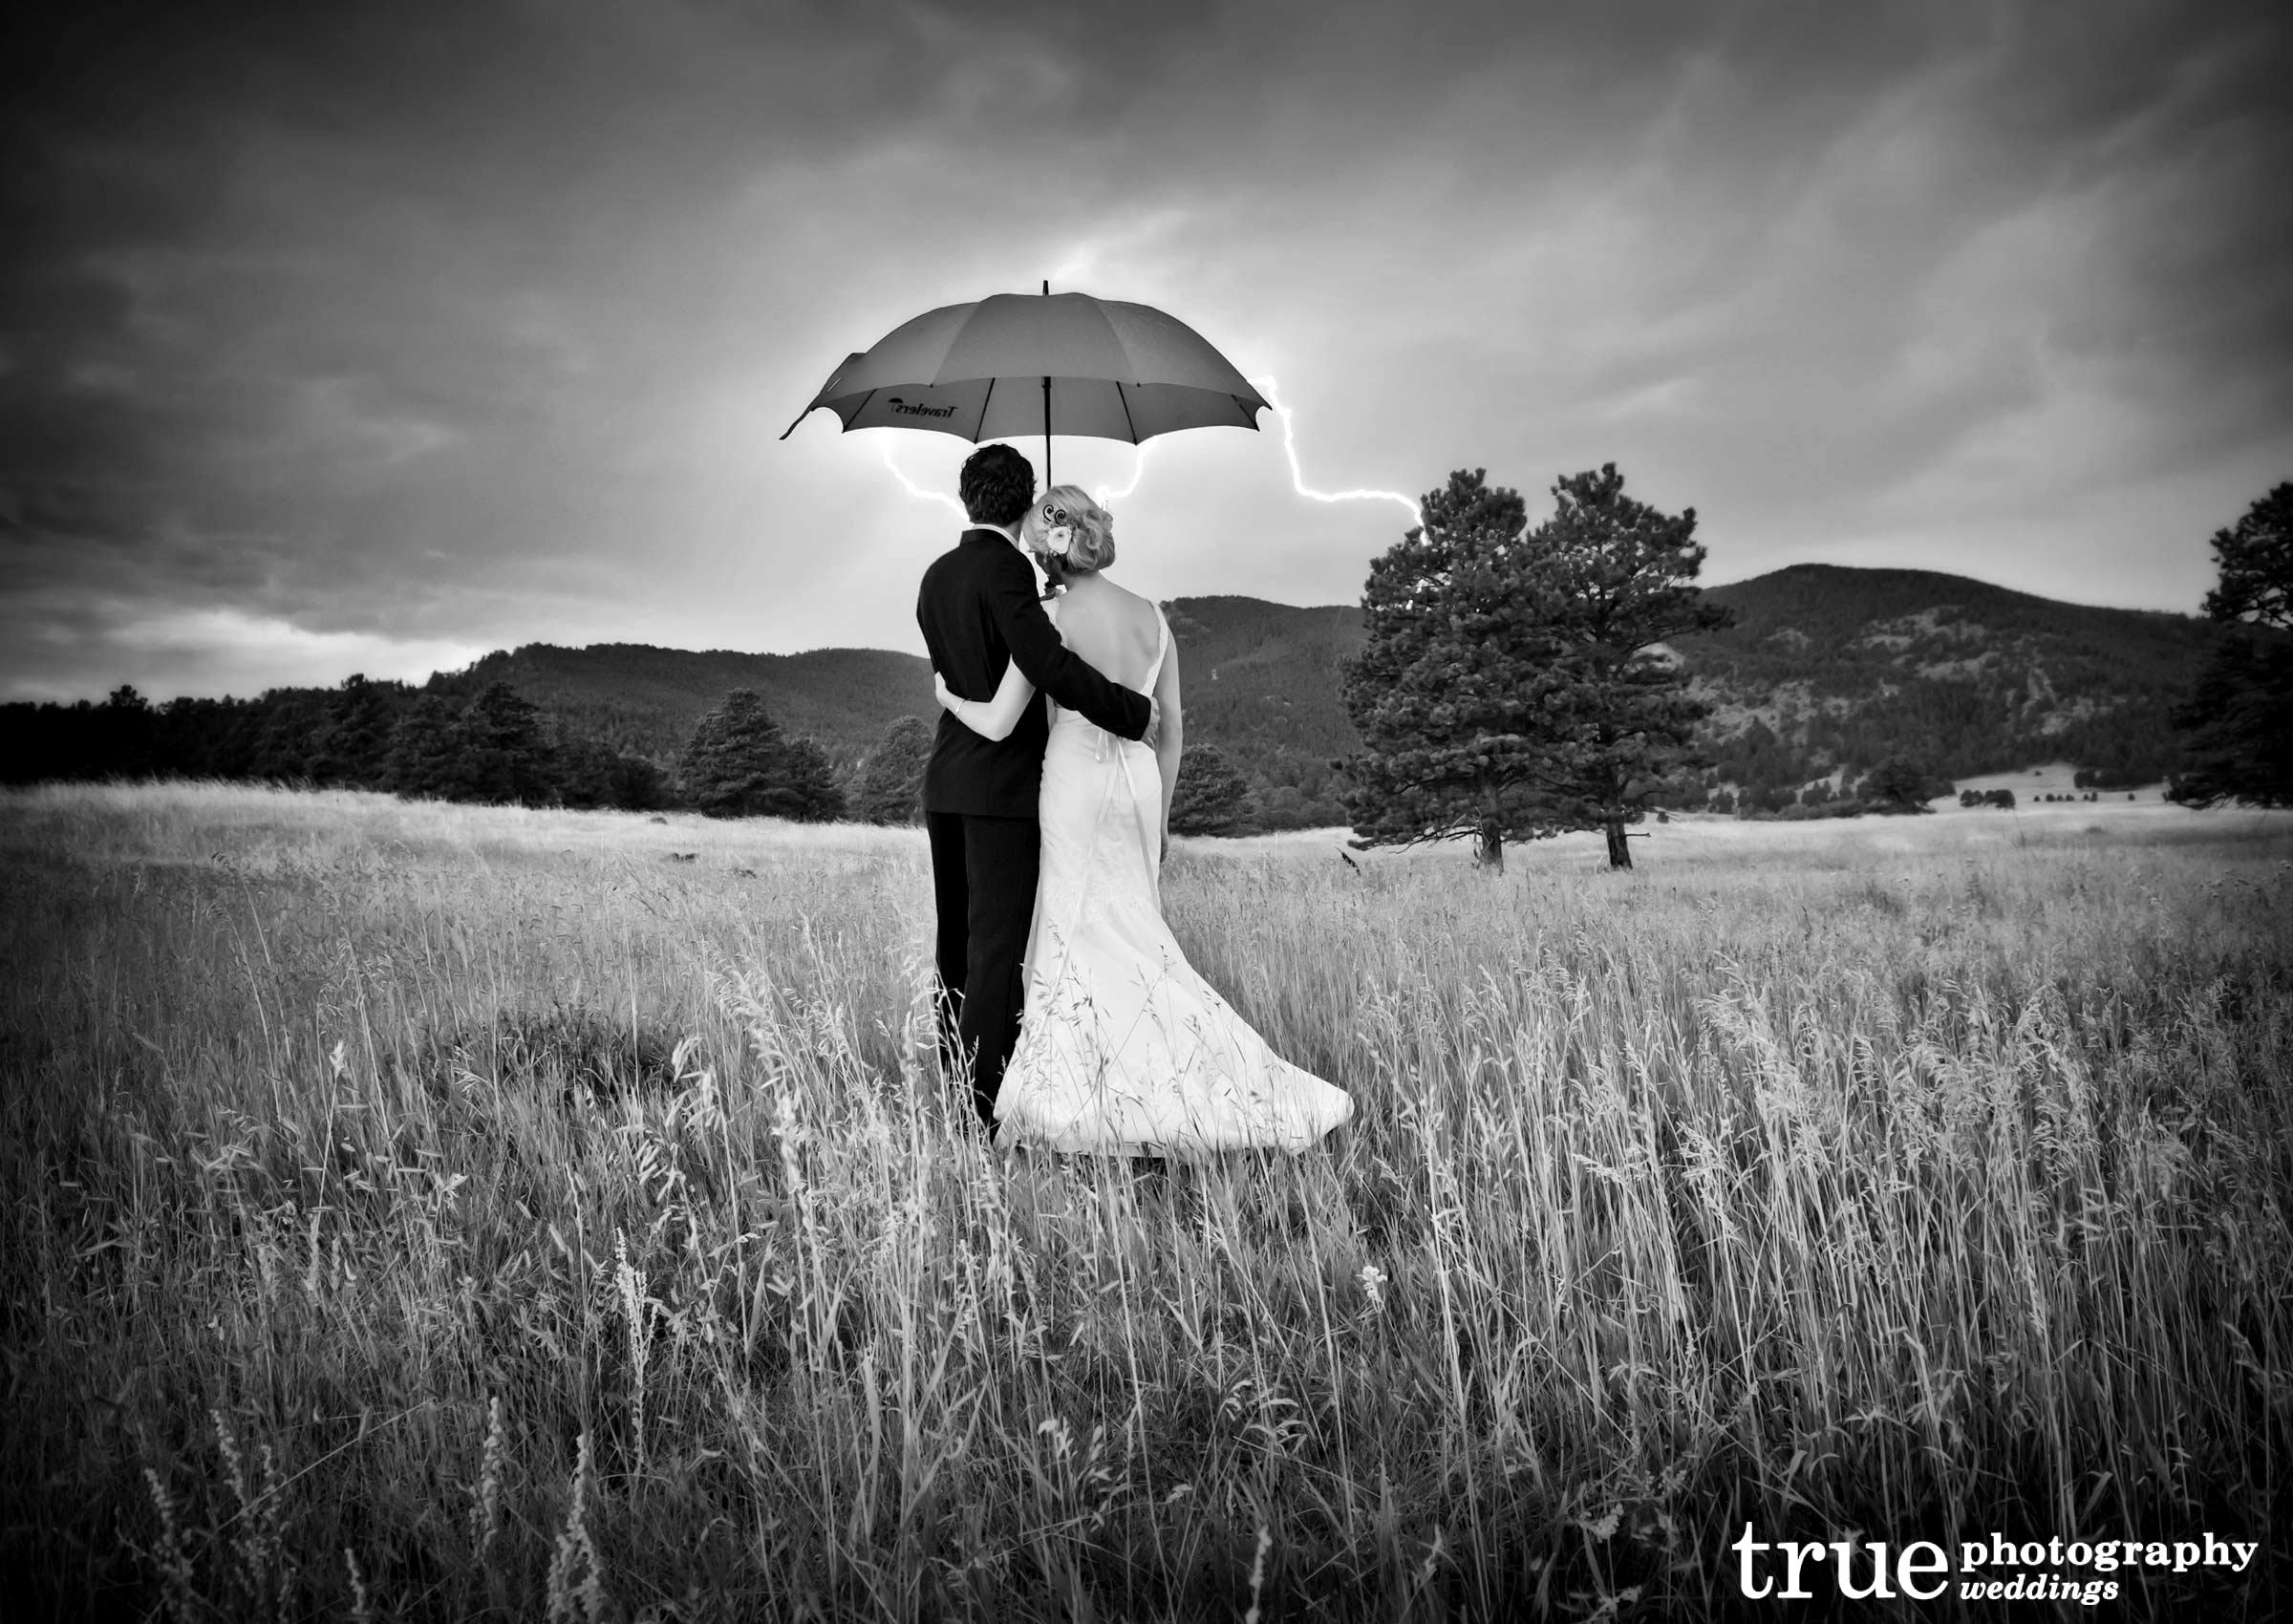 wedding background umbrella romantic dramatic storm yellow lightening during photographers unconditional bride colorless artists truephotography photographs hdblackwallpaper collaborative photographer via